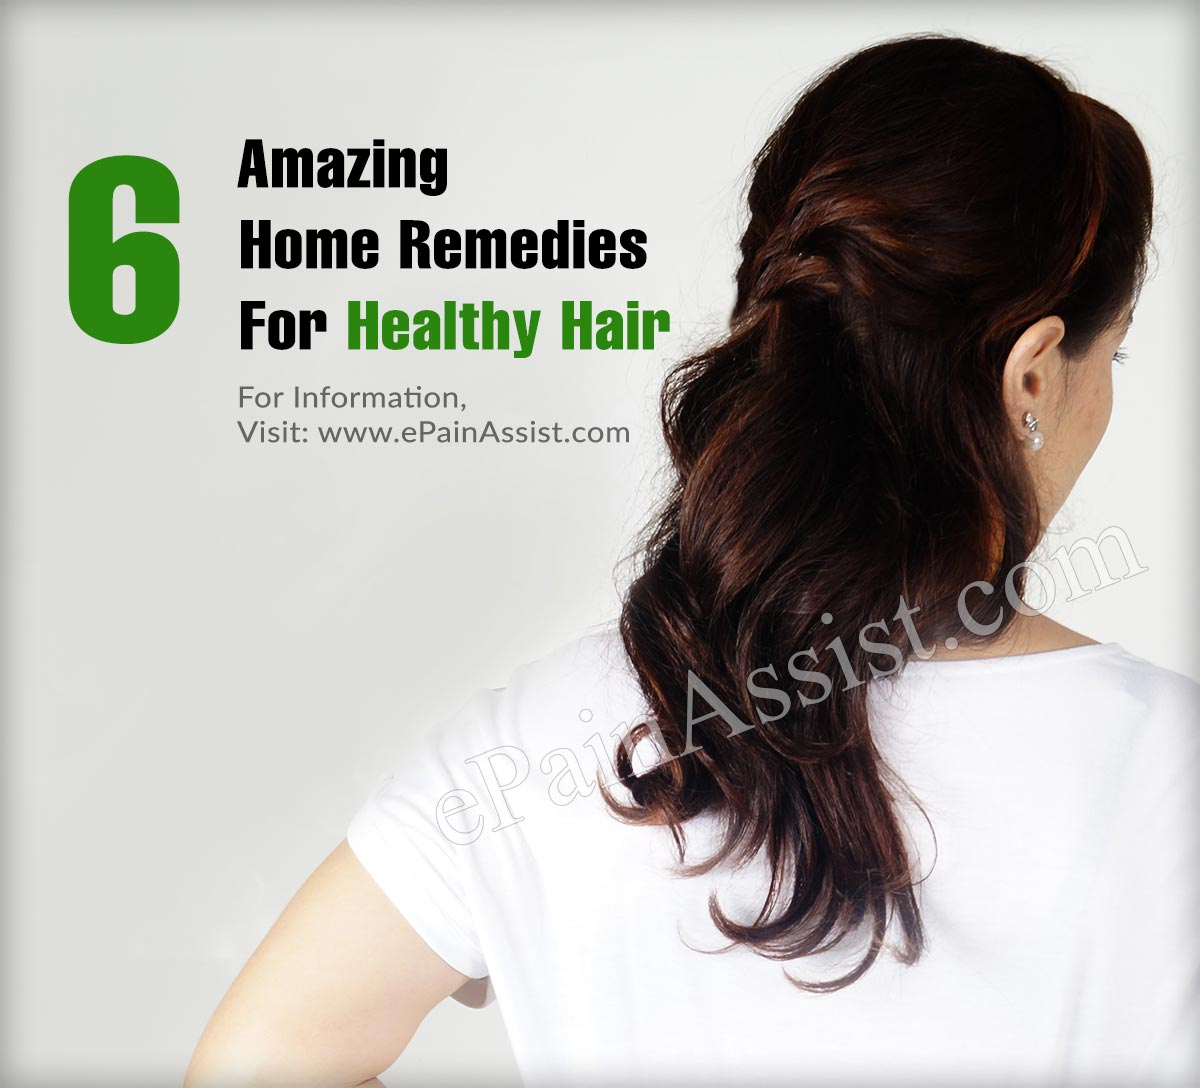 6 Amazing Home Remedies For Healthy Hair